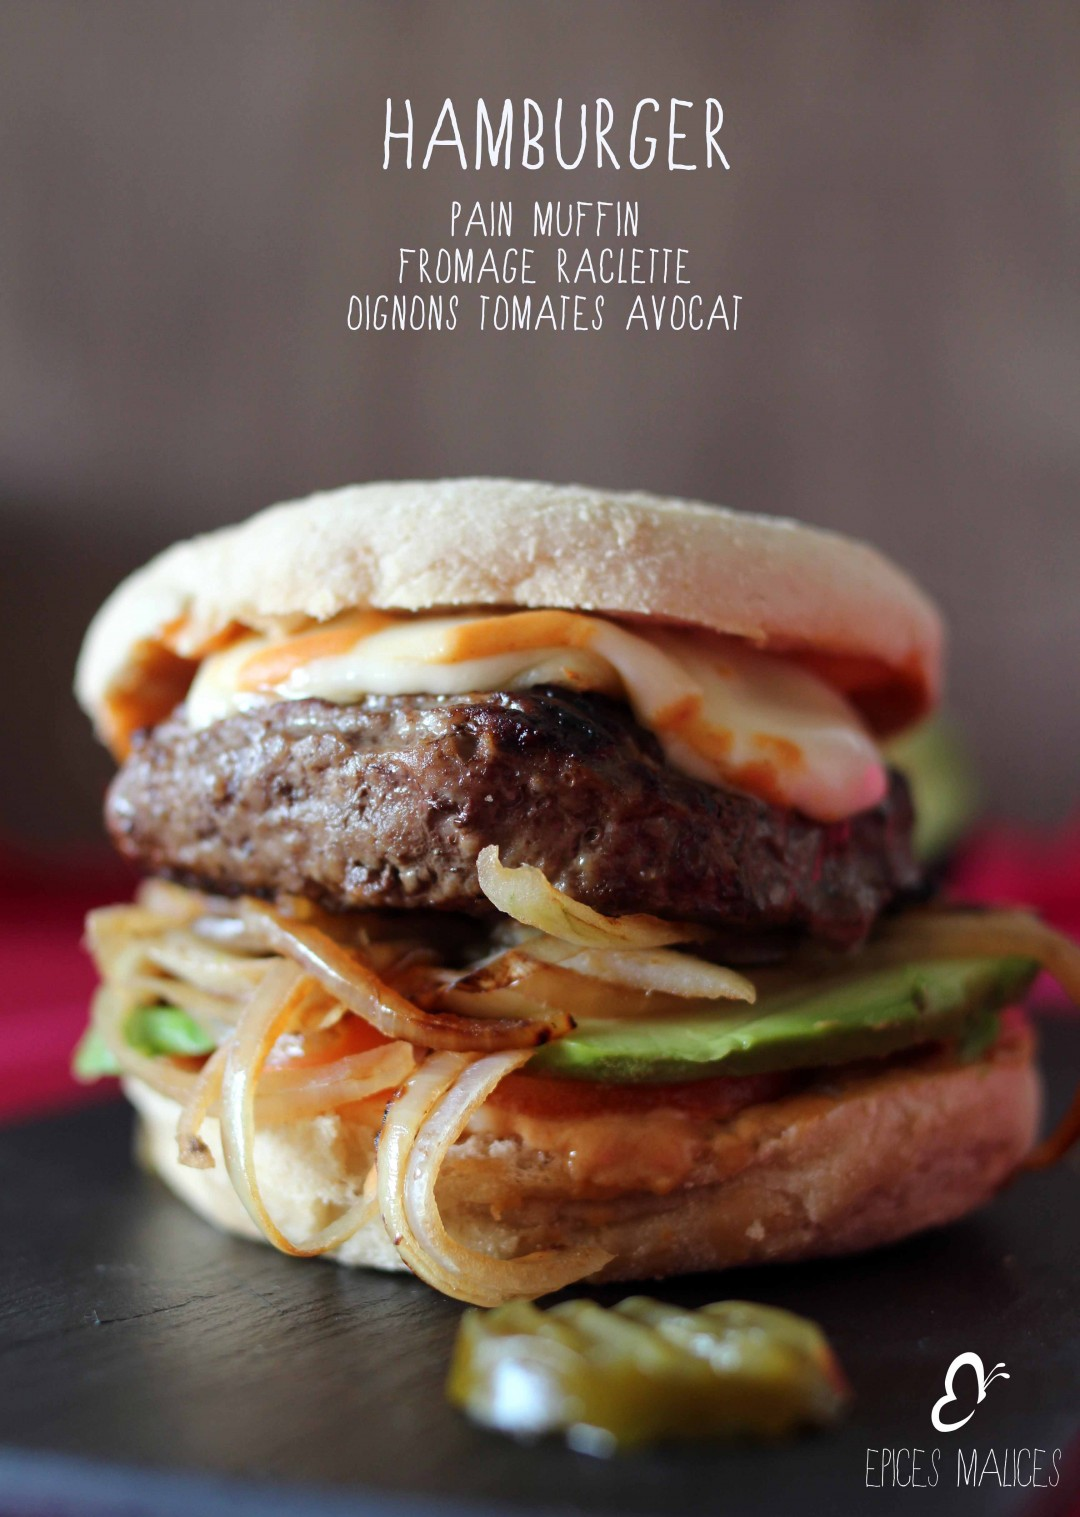 Hamburger raclette au pain muffin – Epices Malices